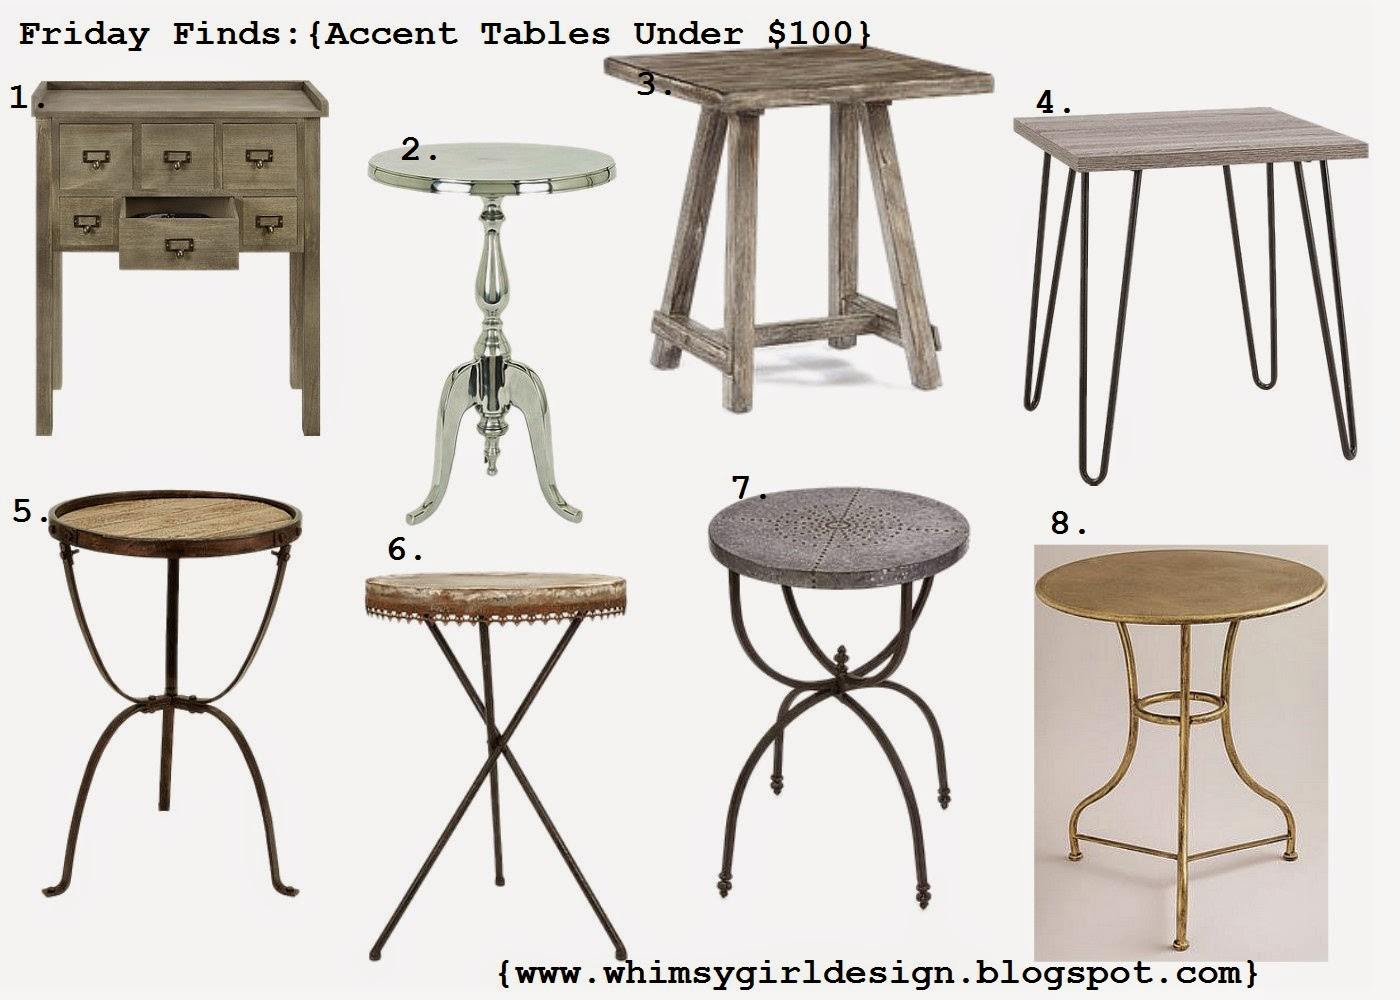 whimsy girl friday finds accent tables under obsidetable snapshot silver pedestal table coffee sets clearance dorm room furniture large square end nate berkus bath rug small